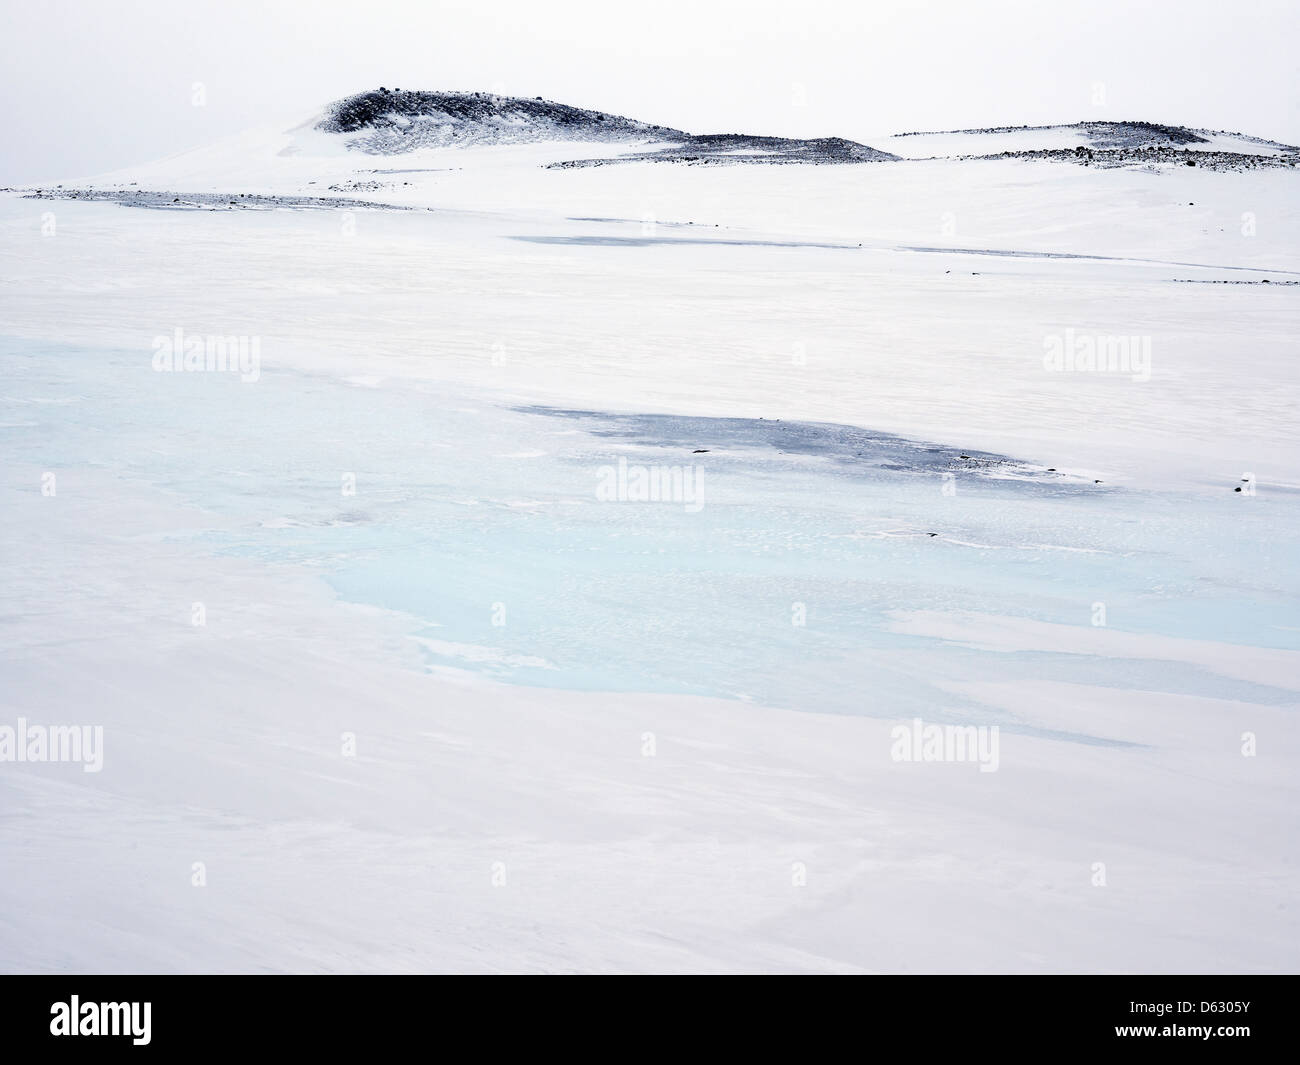 melt water and snow-covered lava fields and mountain hills on Northern Iceland - Stock Image